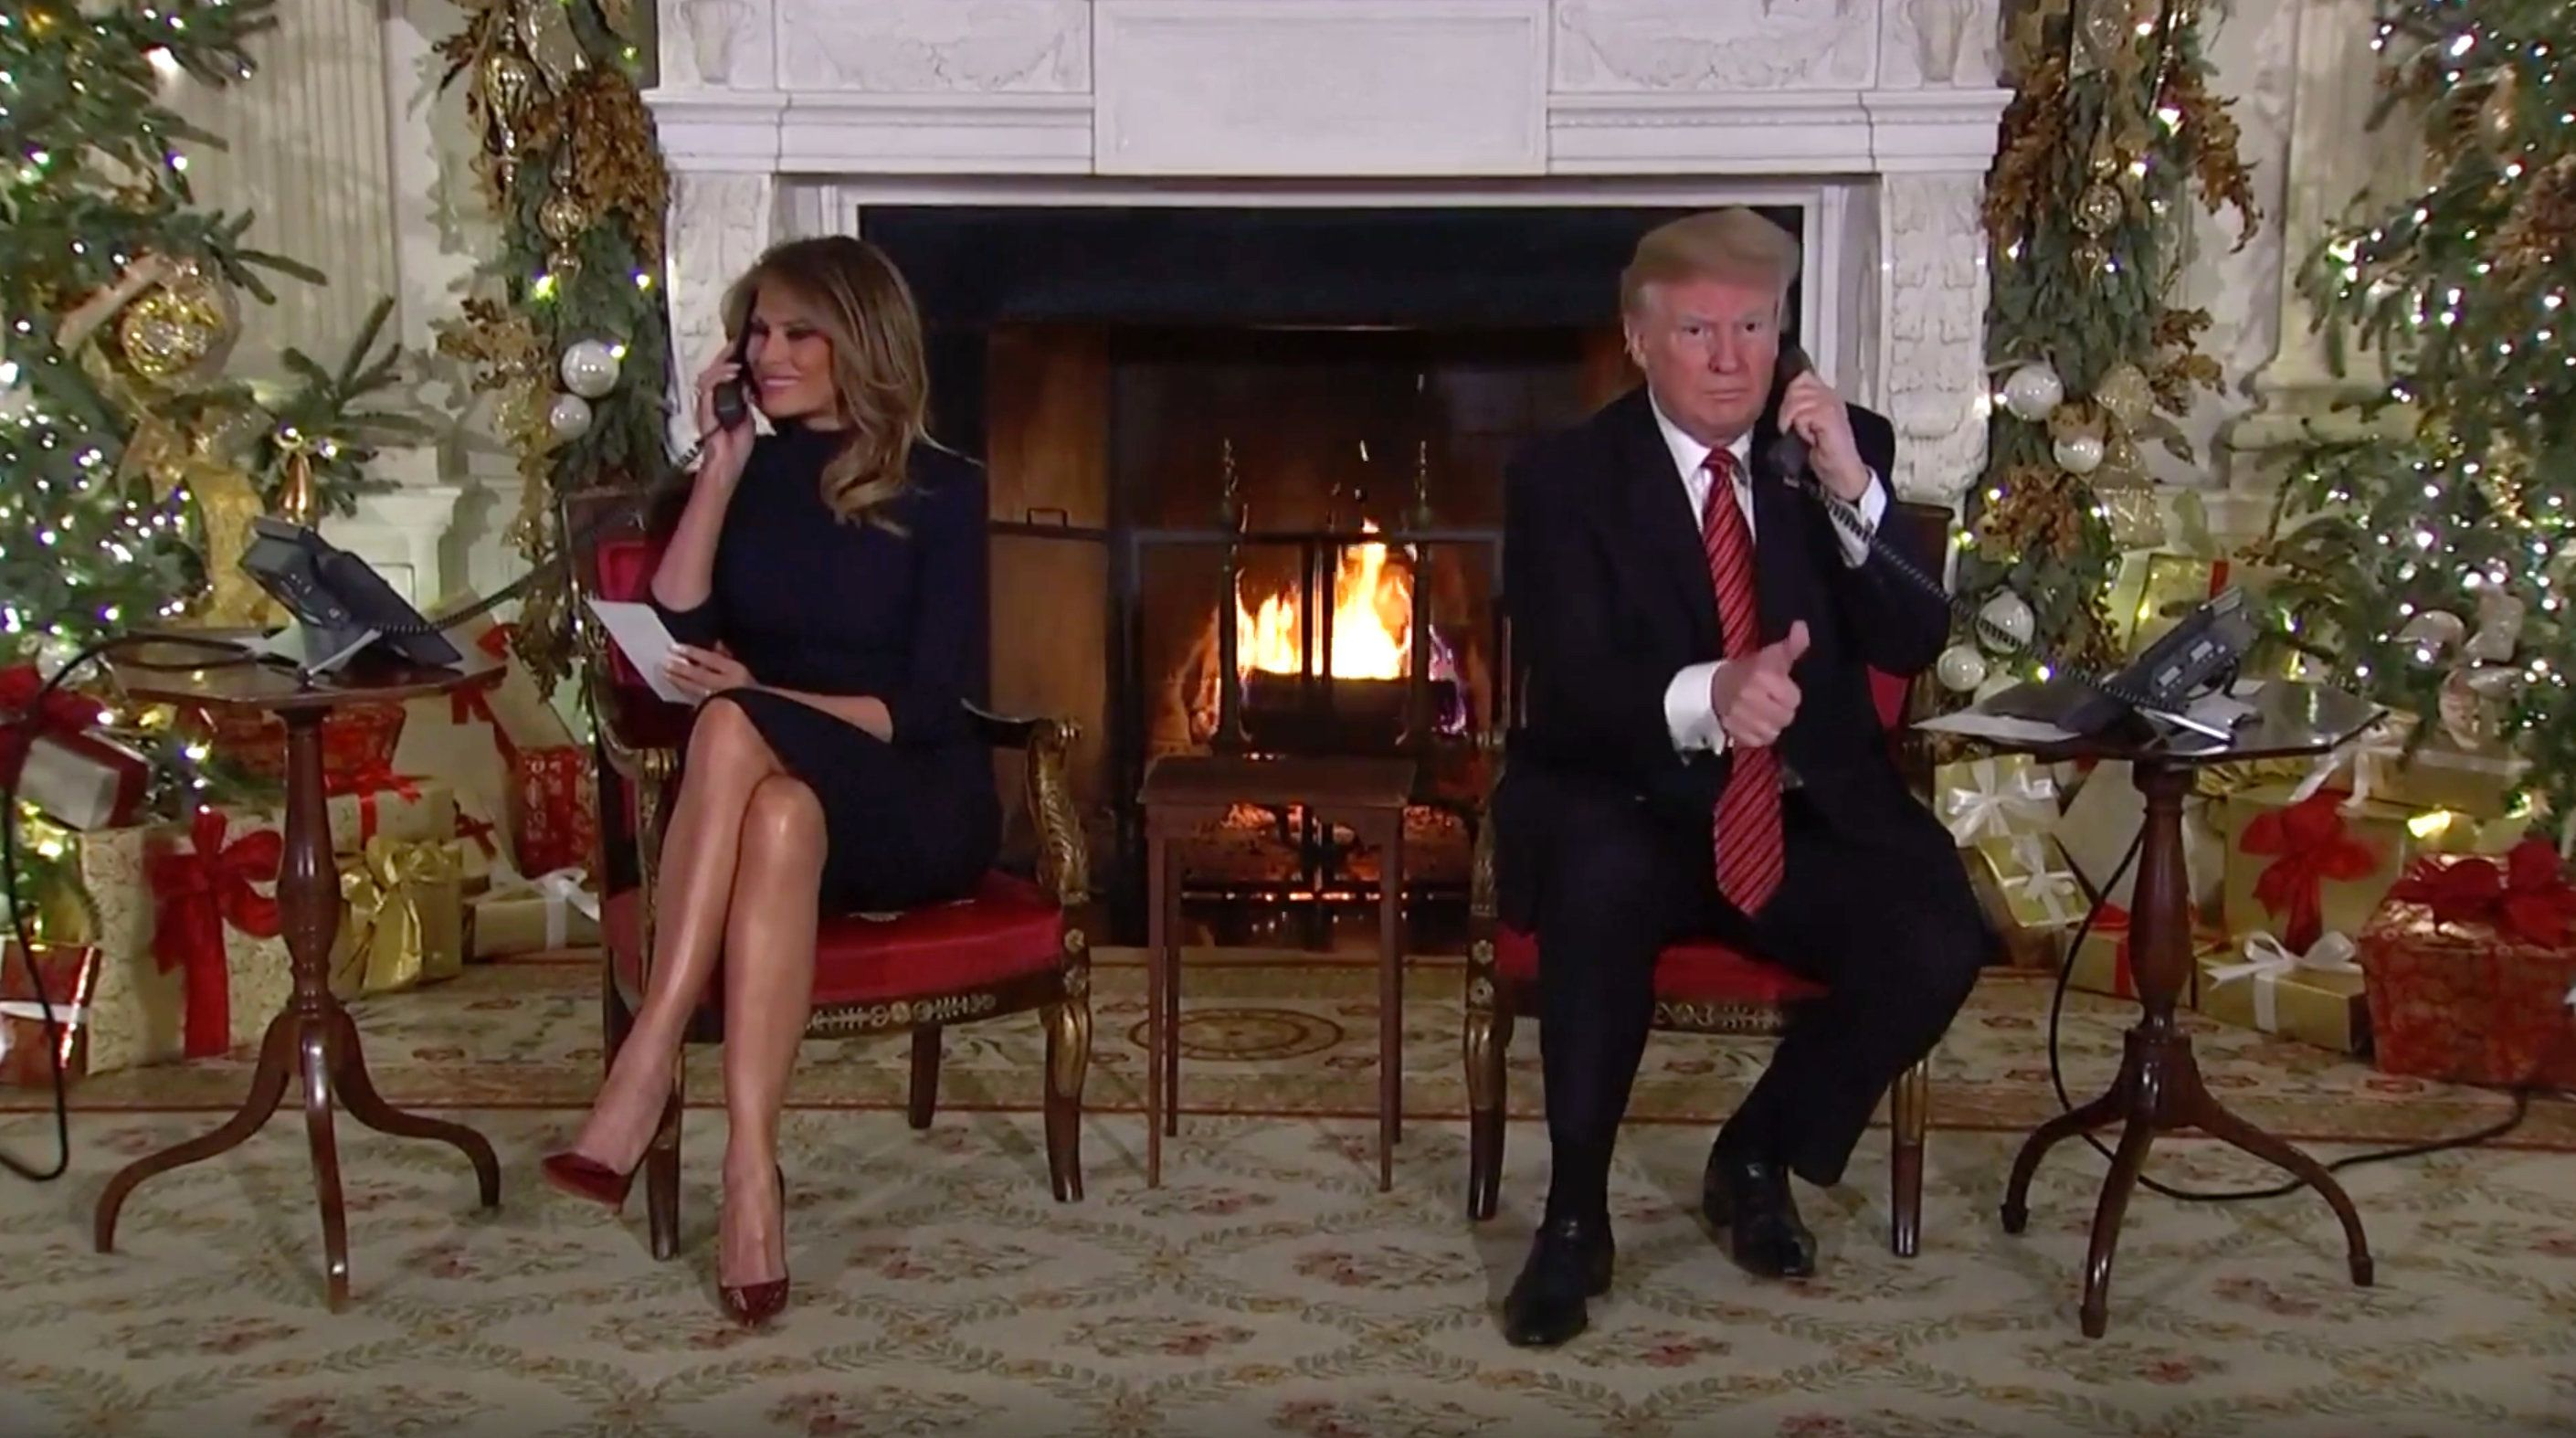 """Are you a still a believer in Santa? Because at 7, it's marginal, right?"" the president said."